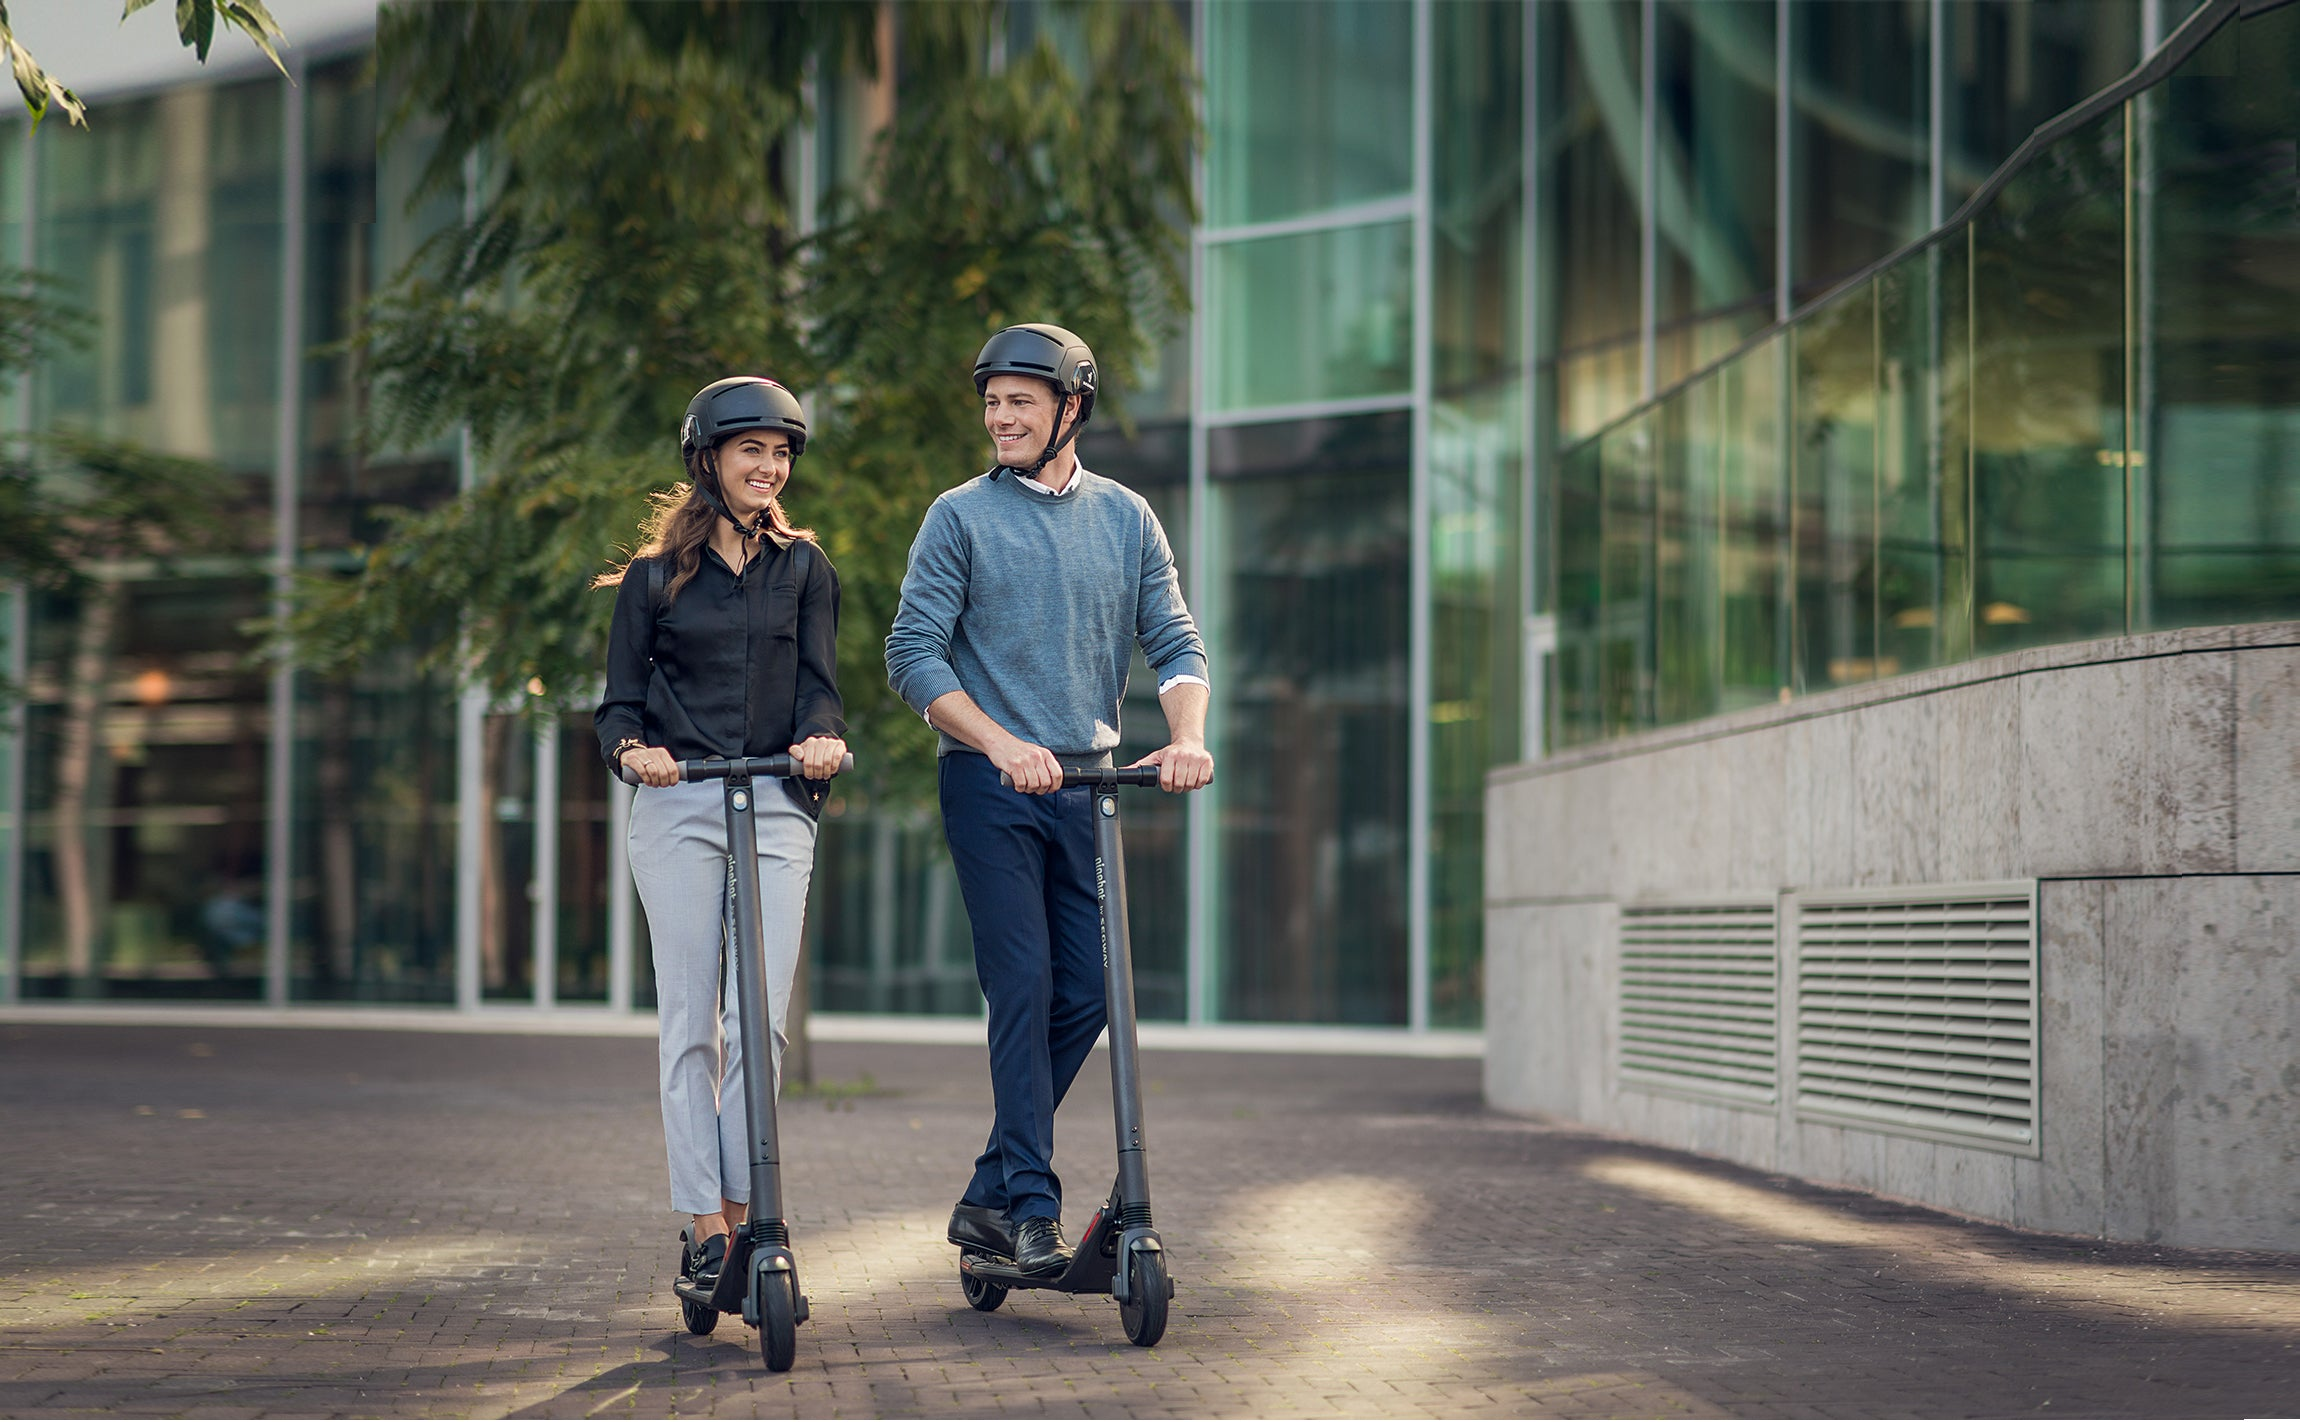 Ninebot ES2 Segway E-Scooters on Pavement Image